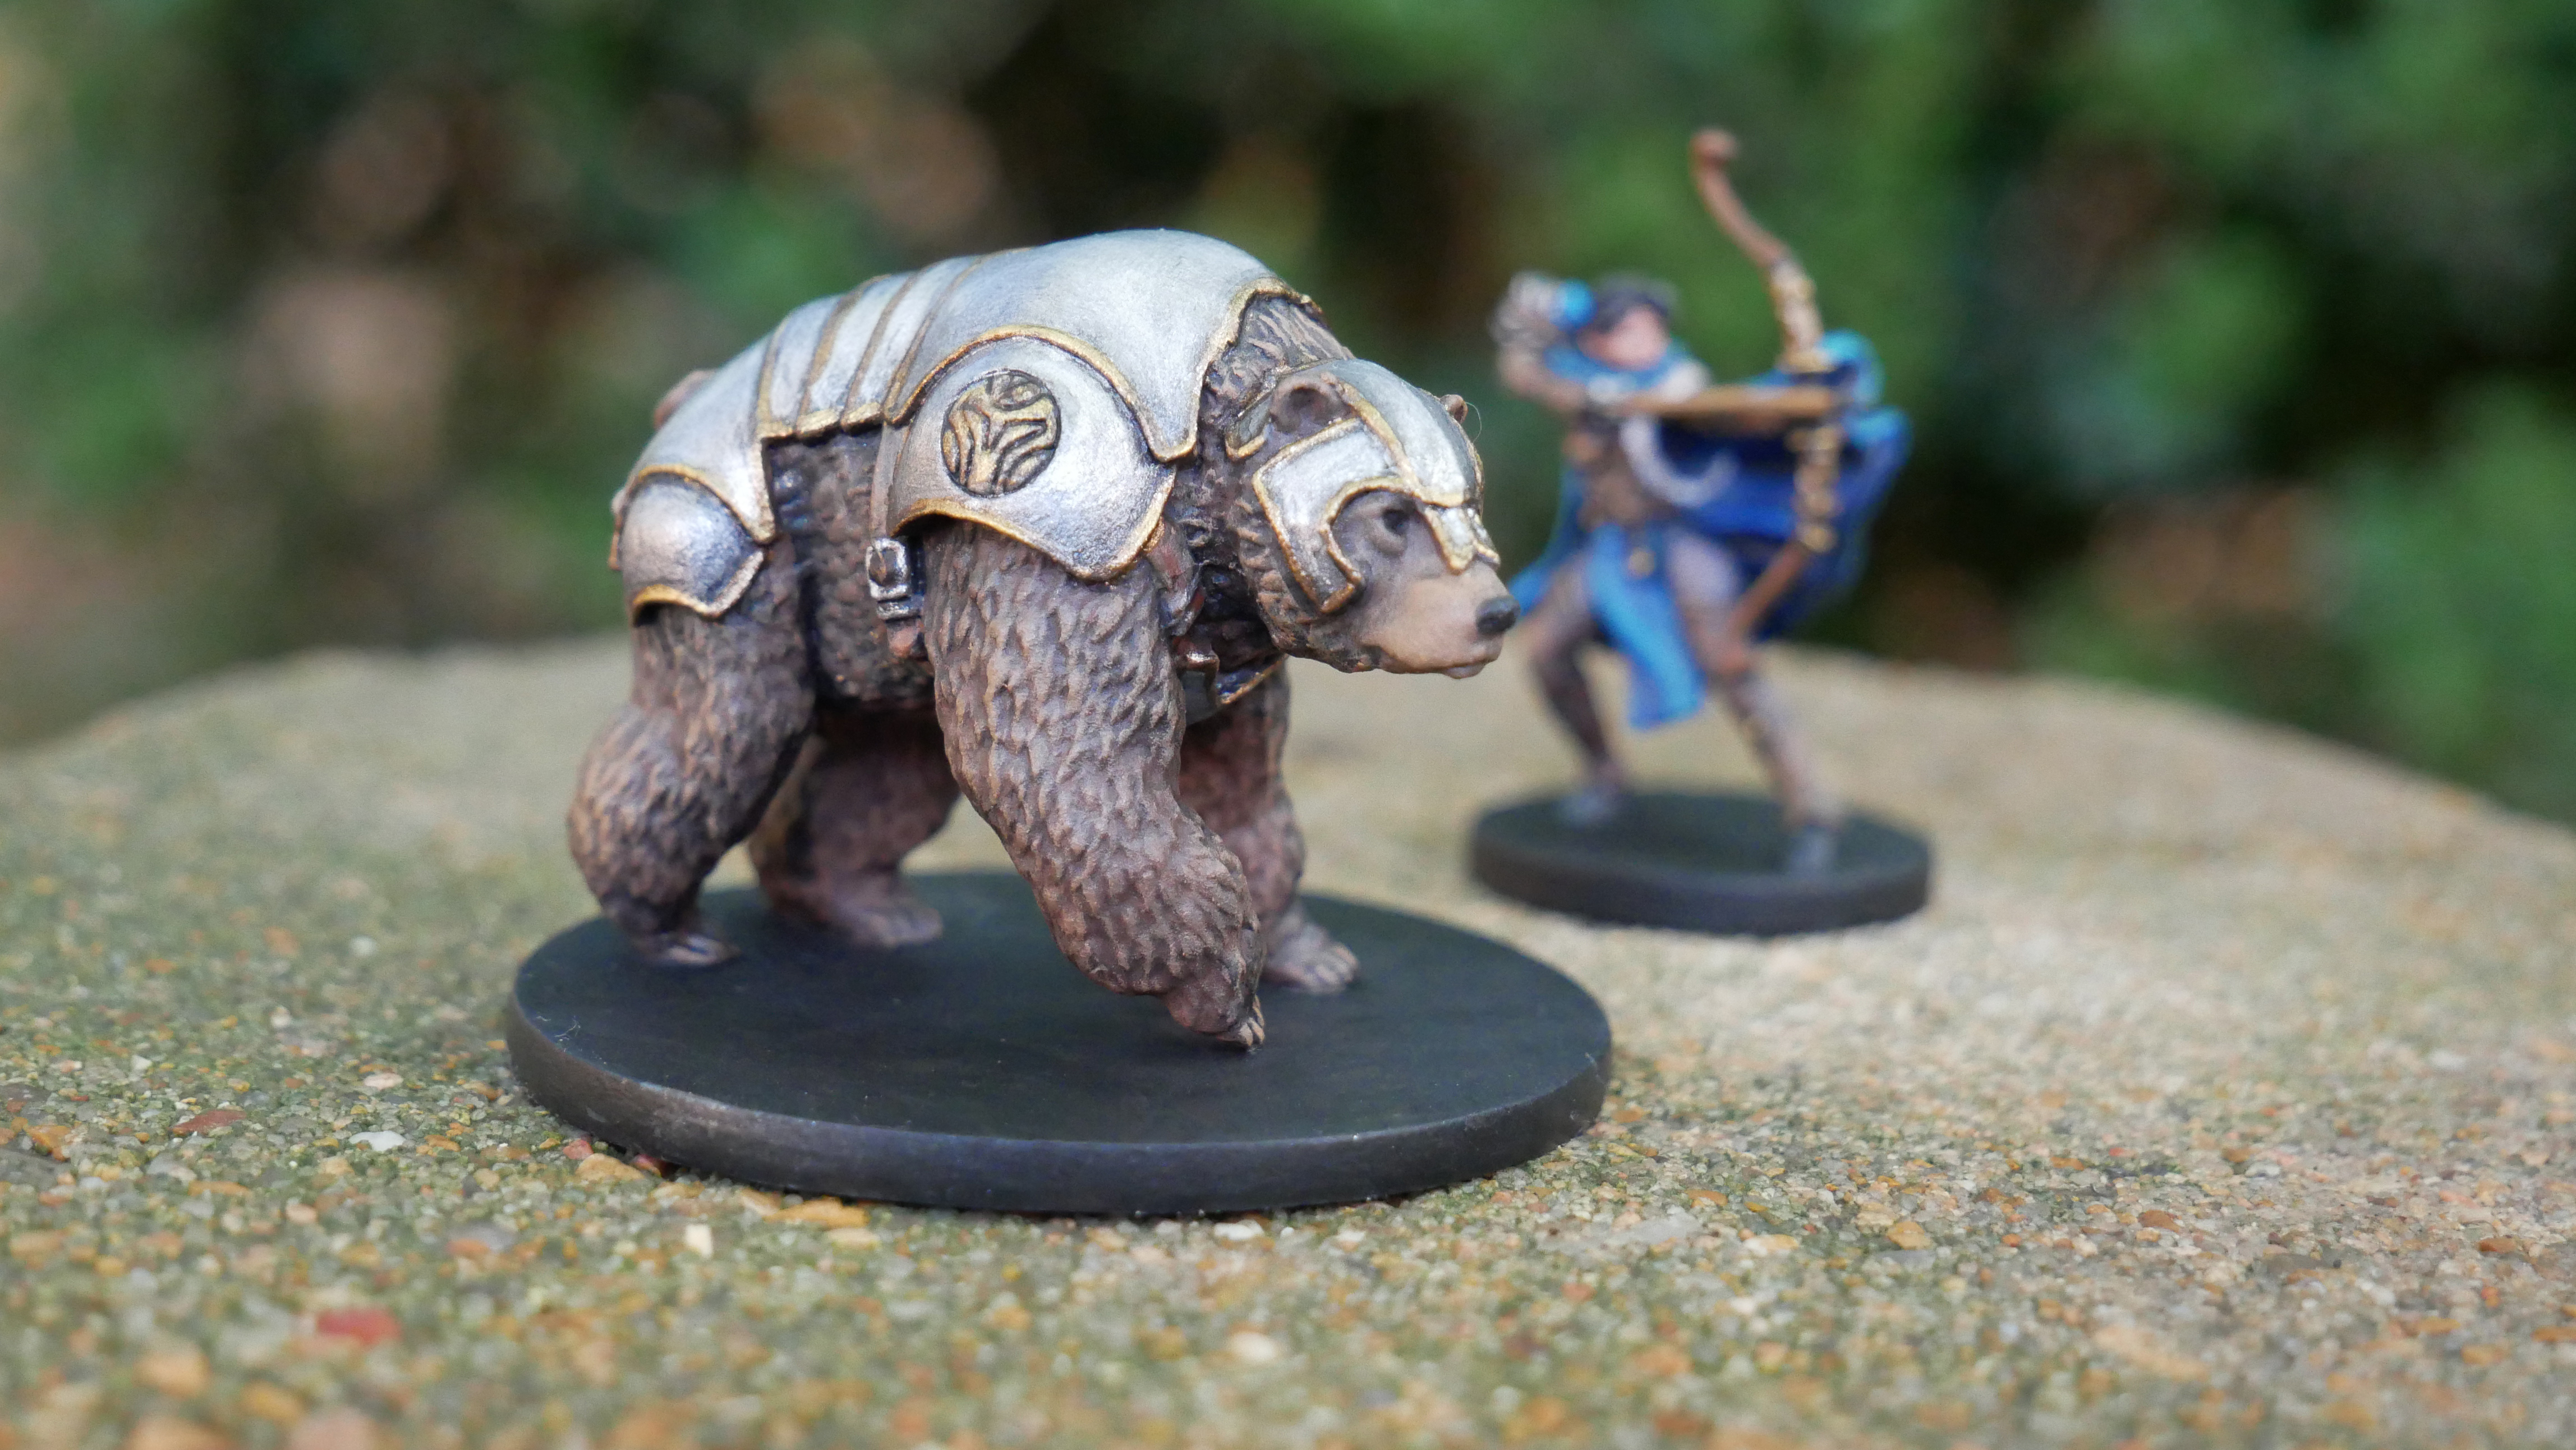 Painted Trinket Miniature from the Critical Role Kickstarter by Steamforged